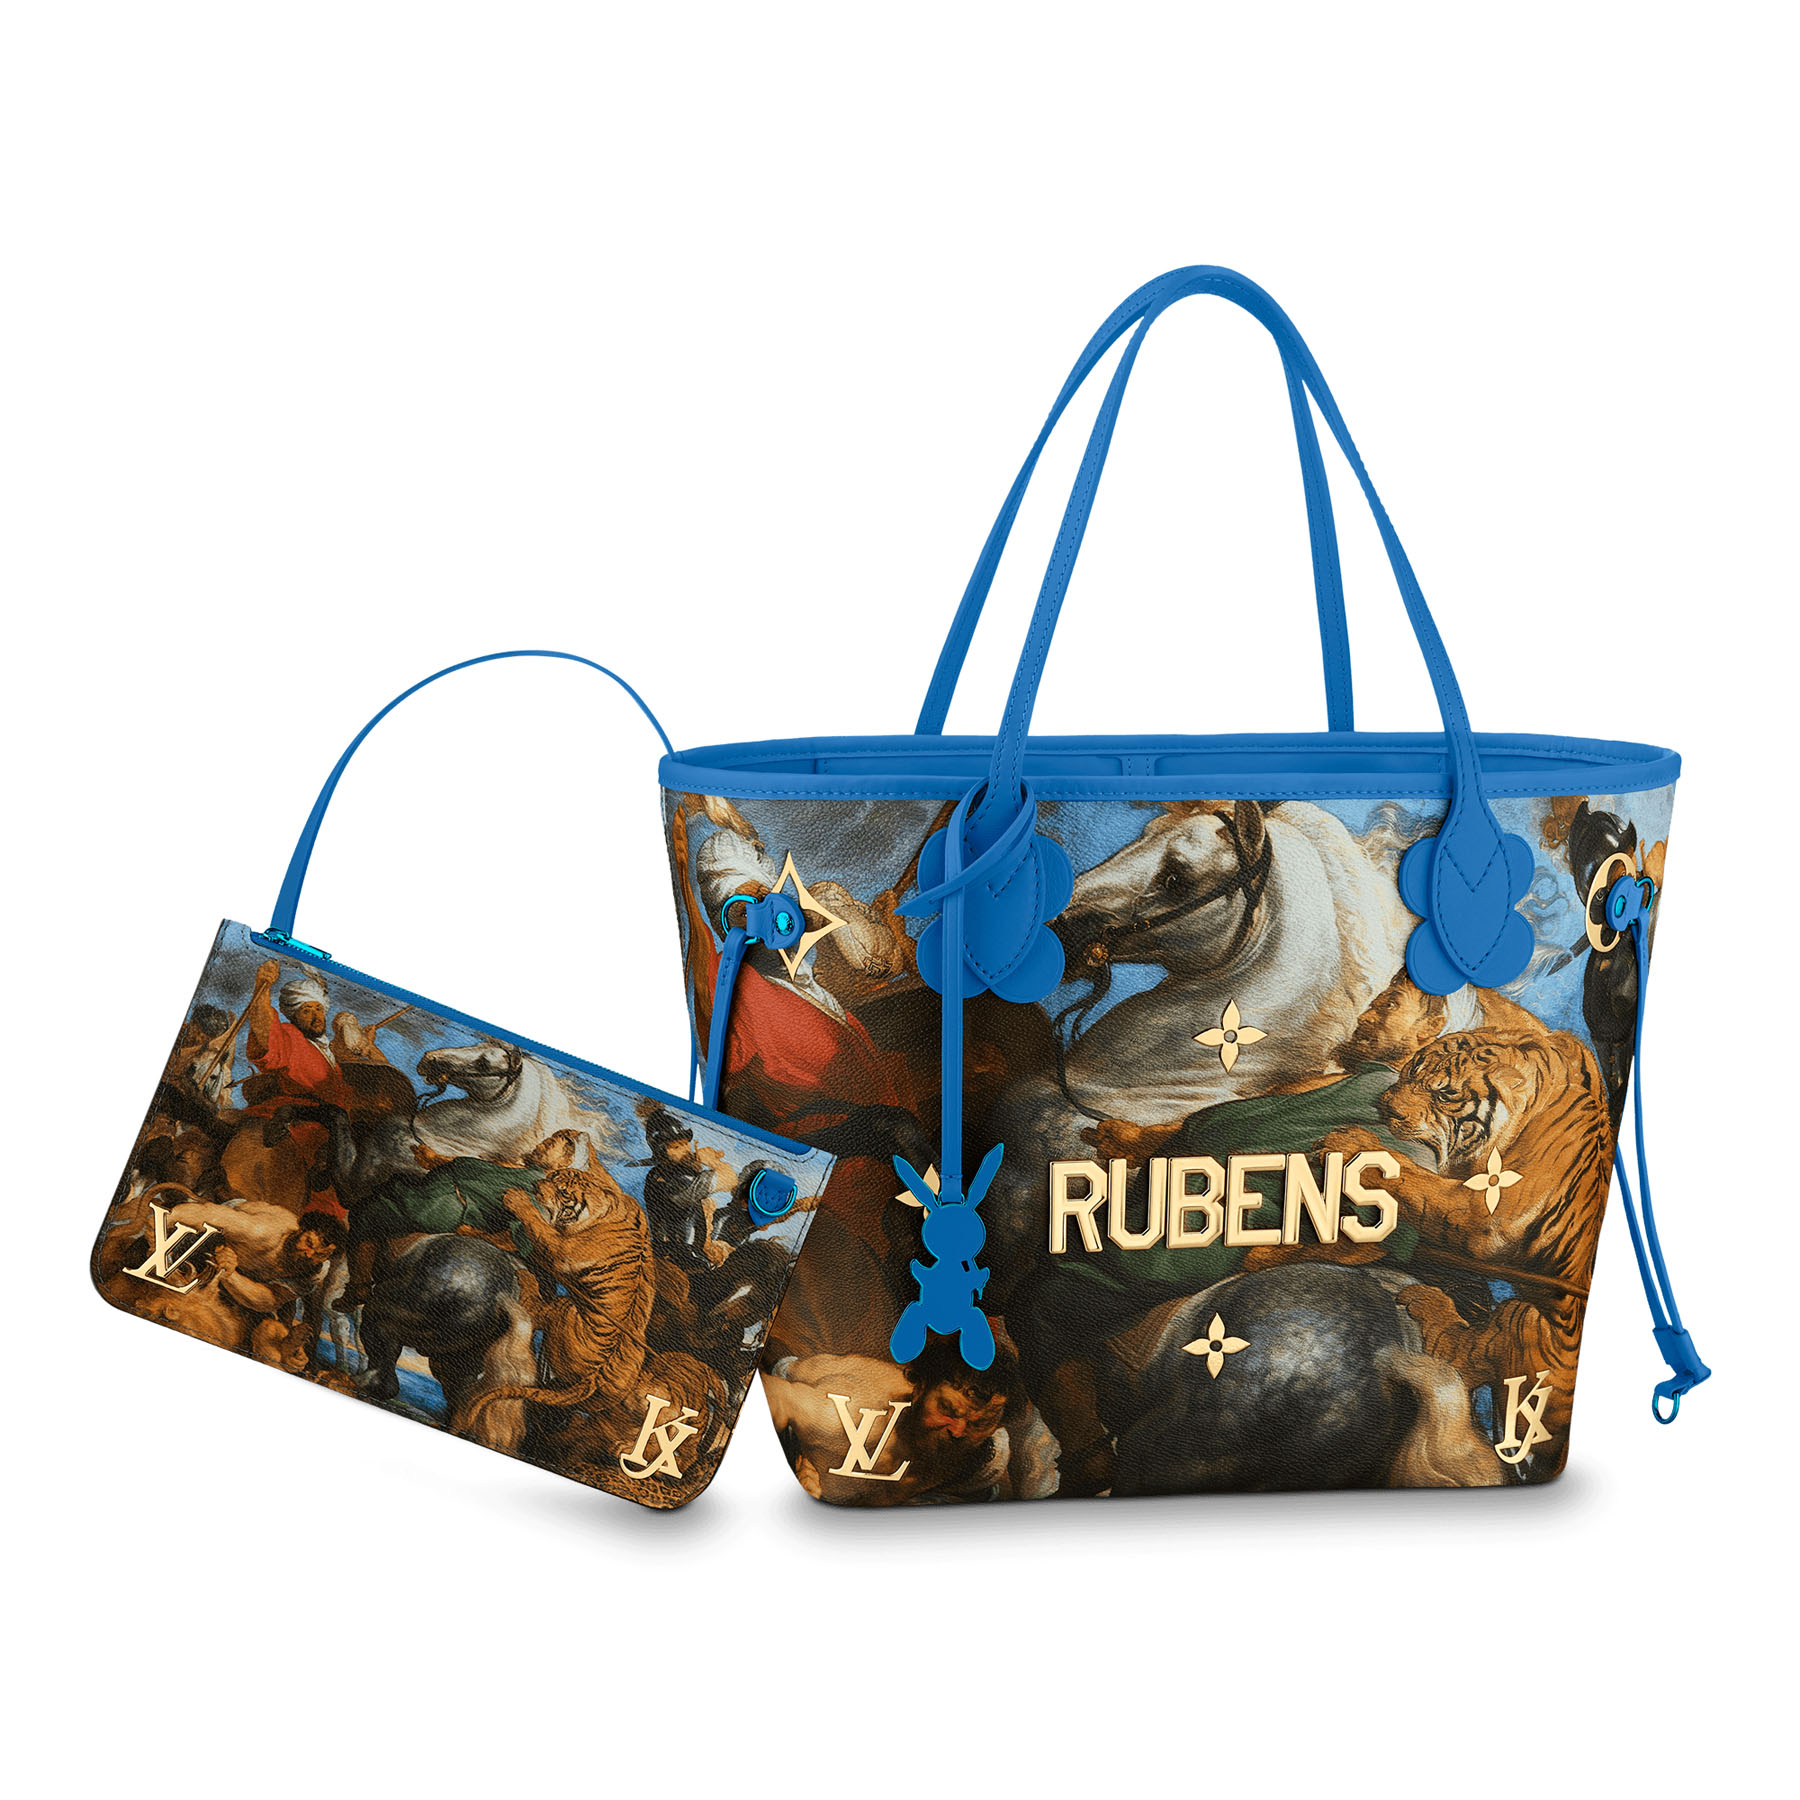 Louis-Vuitton-Jeff-Koons-Collaboration-the-impression-02